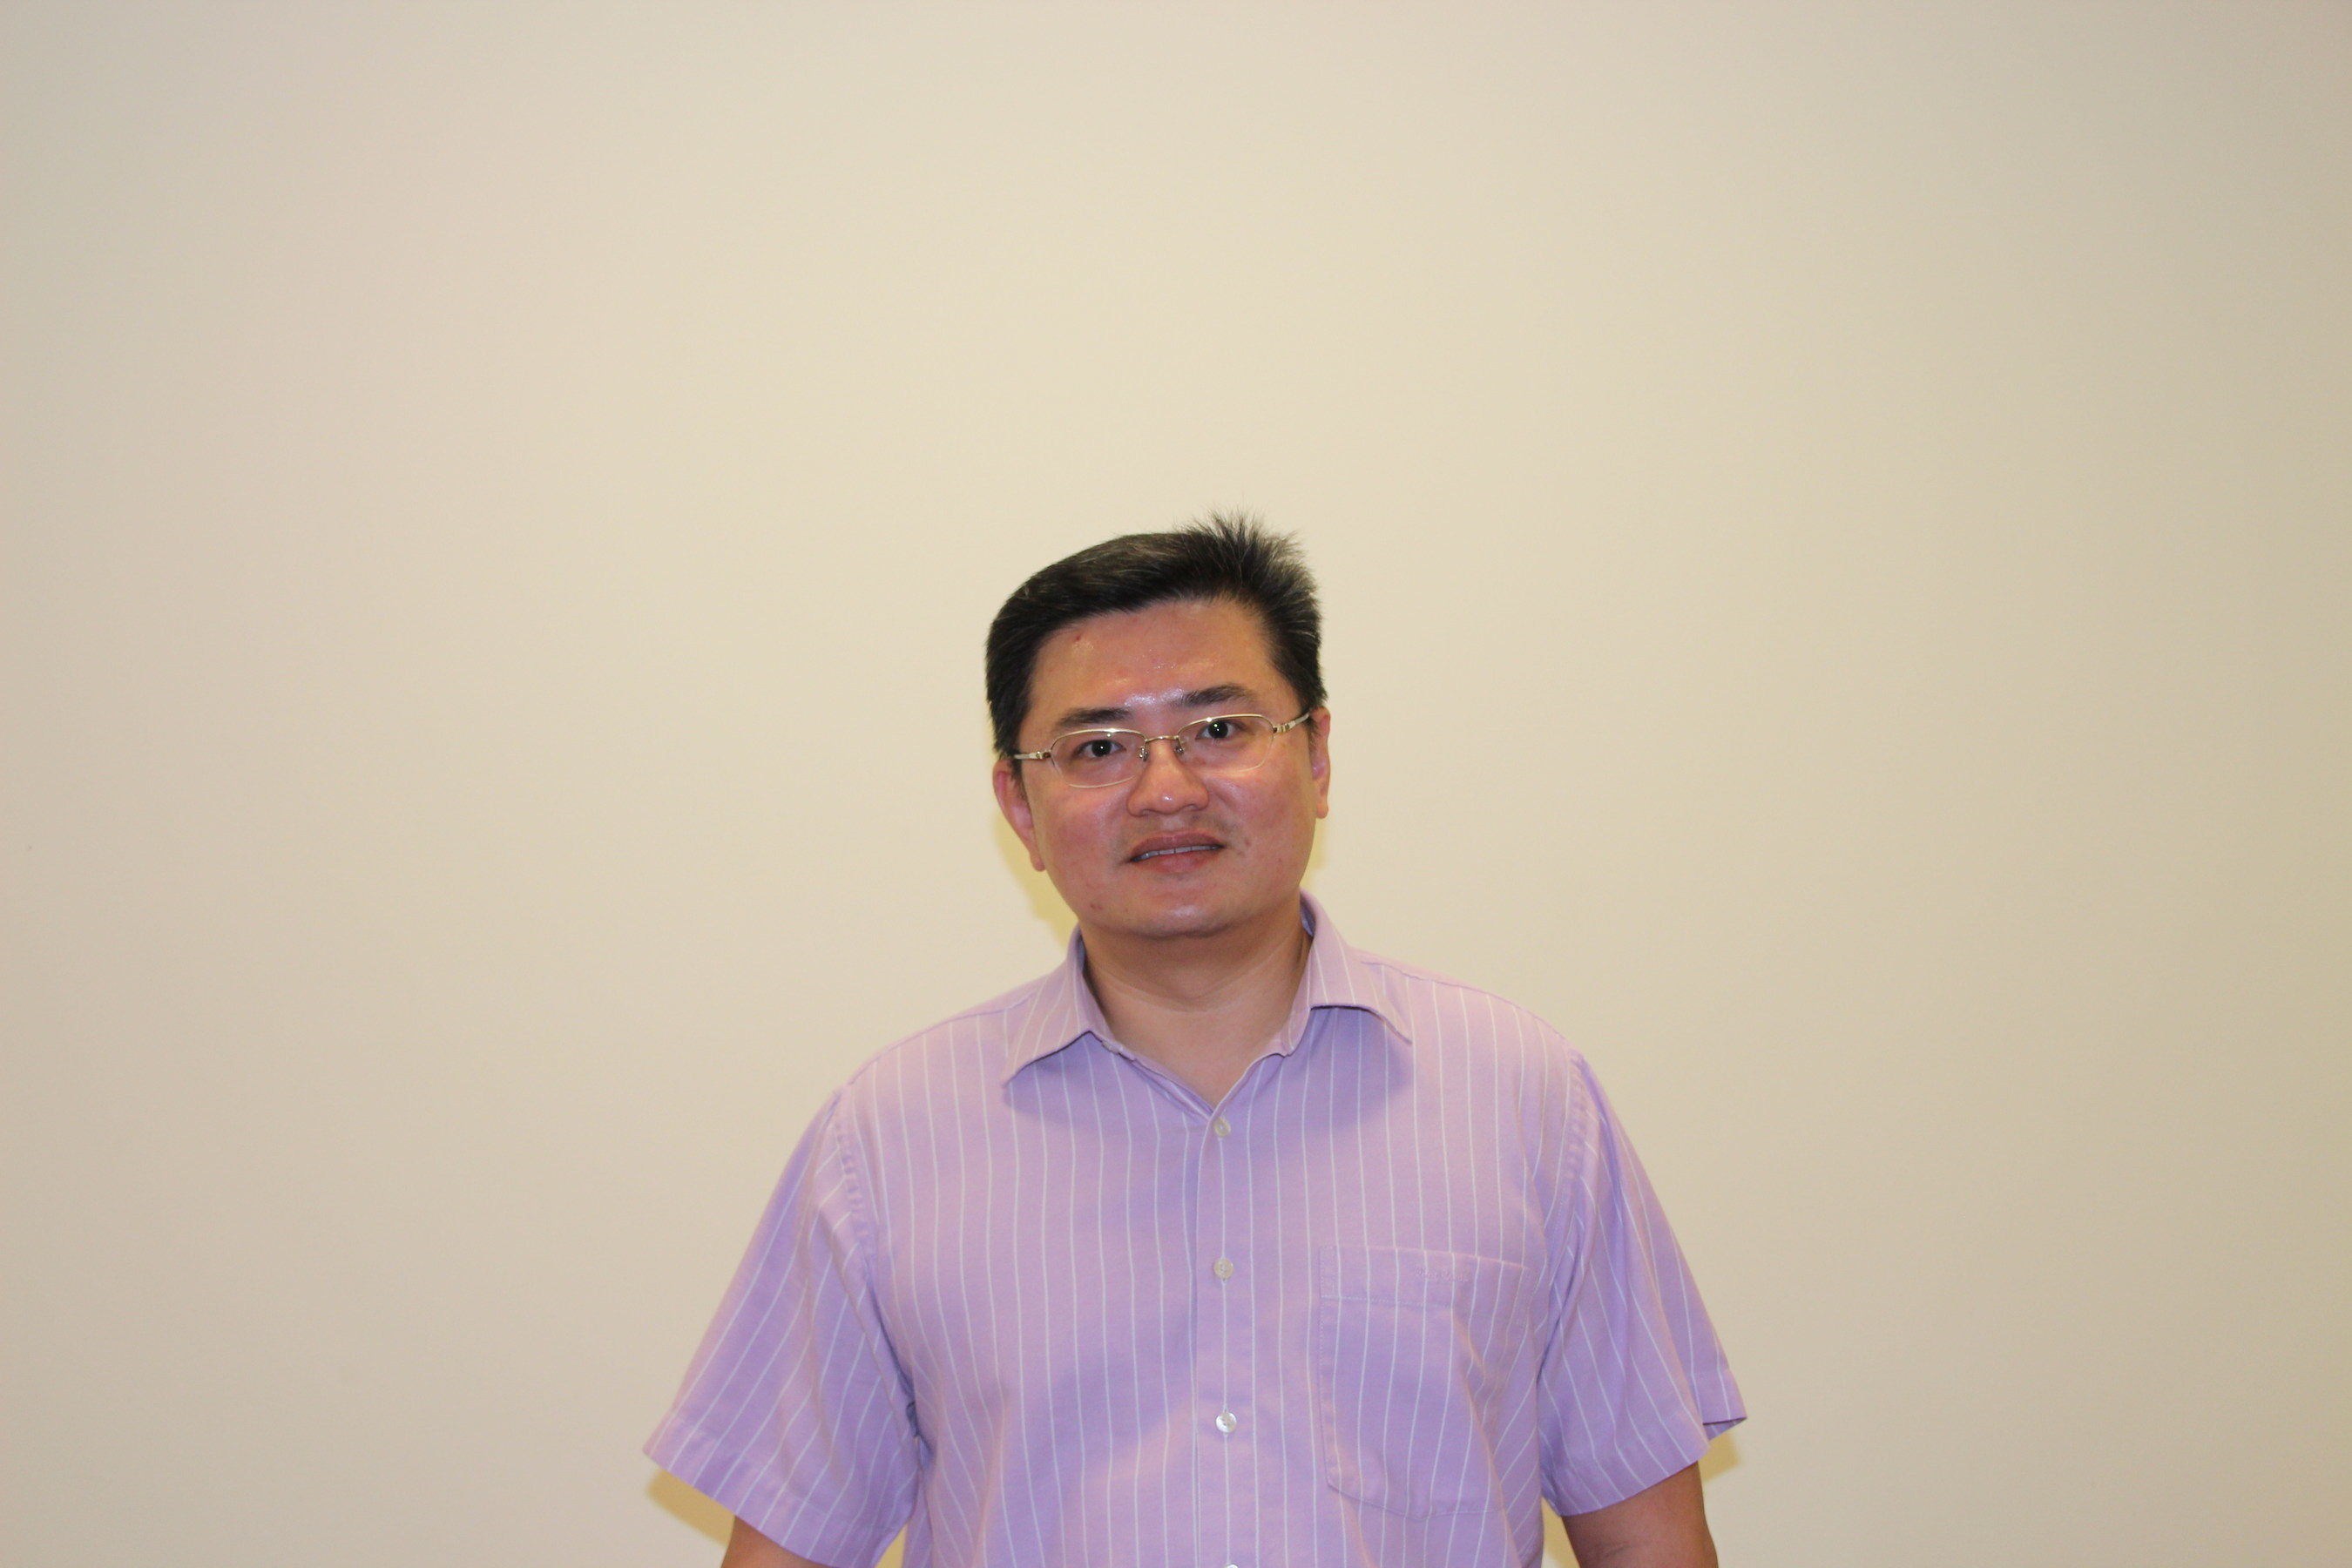 Sealite Announces Business Development Manager for Asia